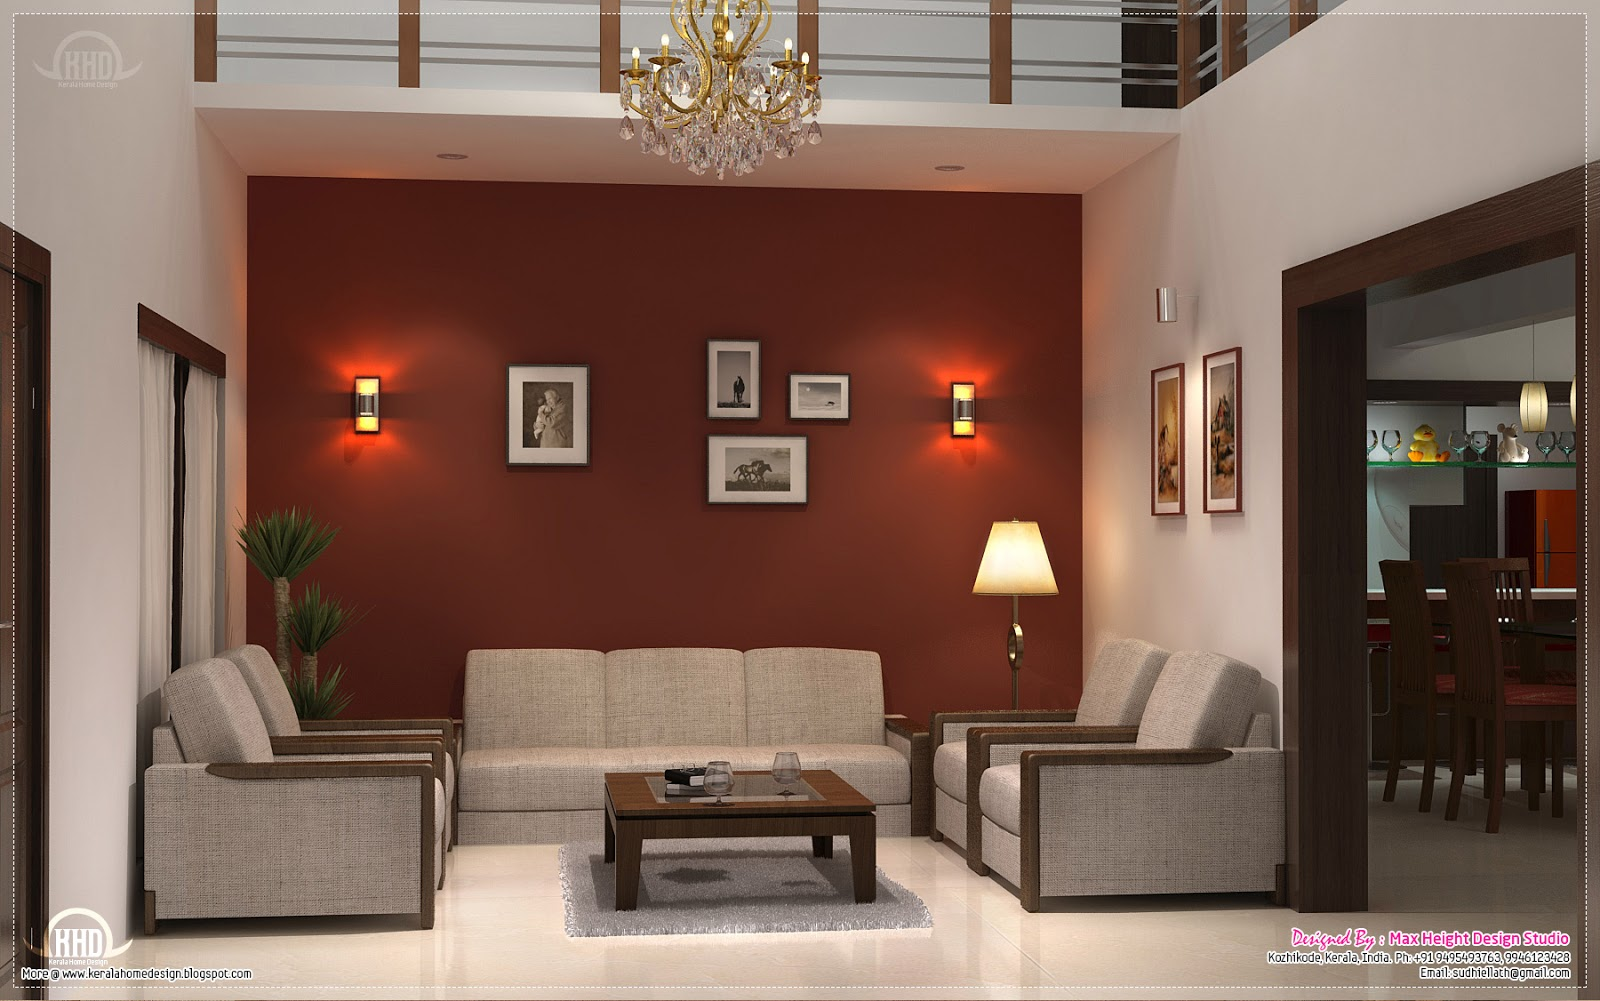 Home interior design ideas kerala home design and floor for Room interior design ideas